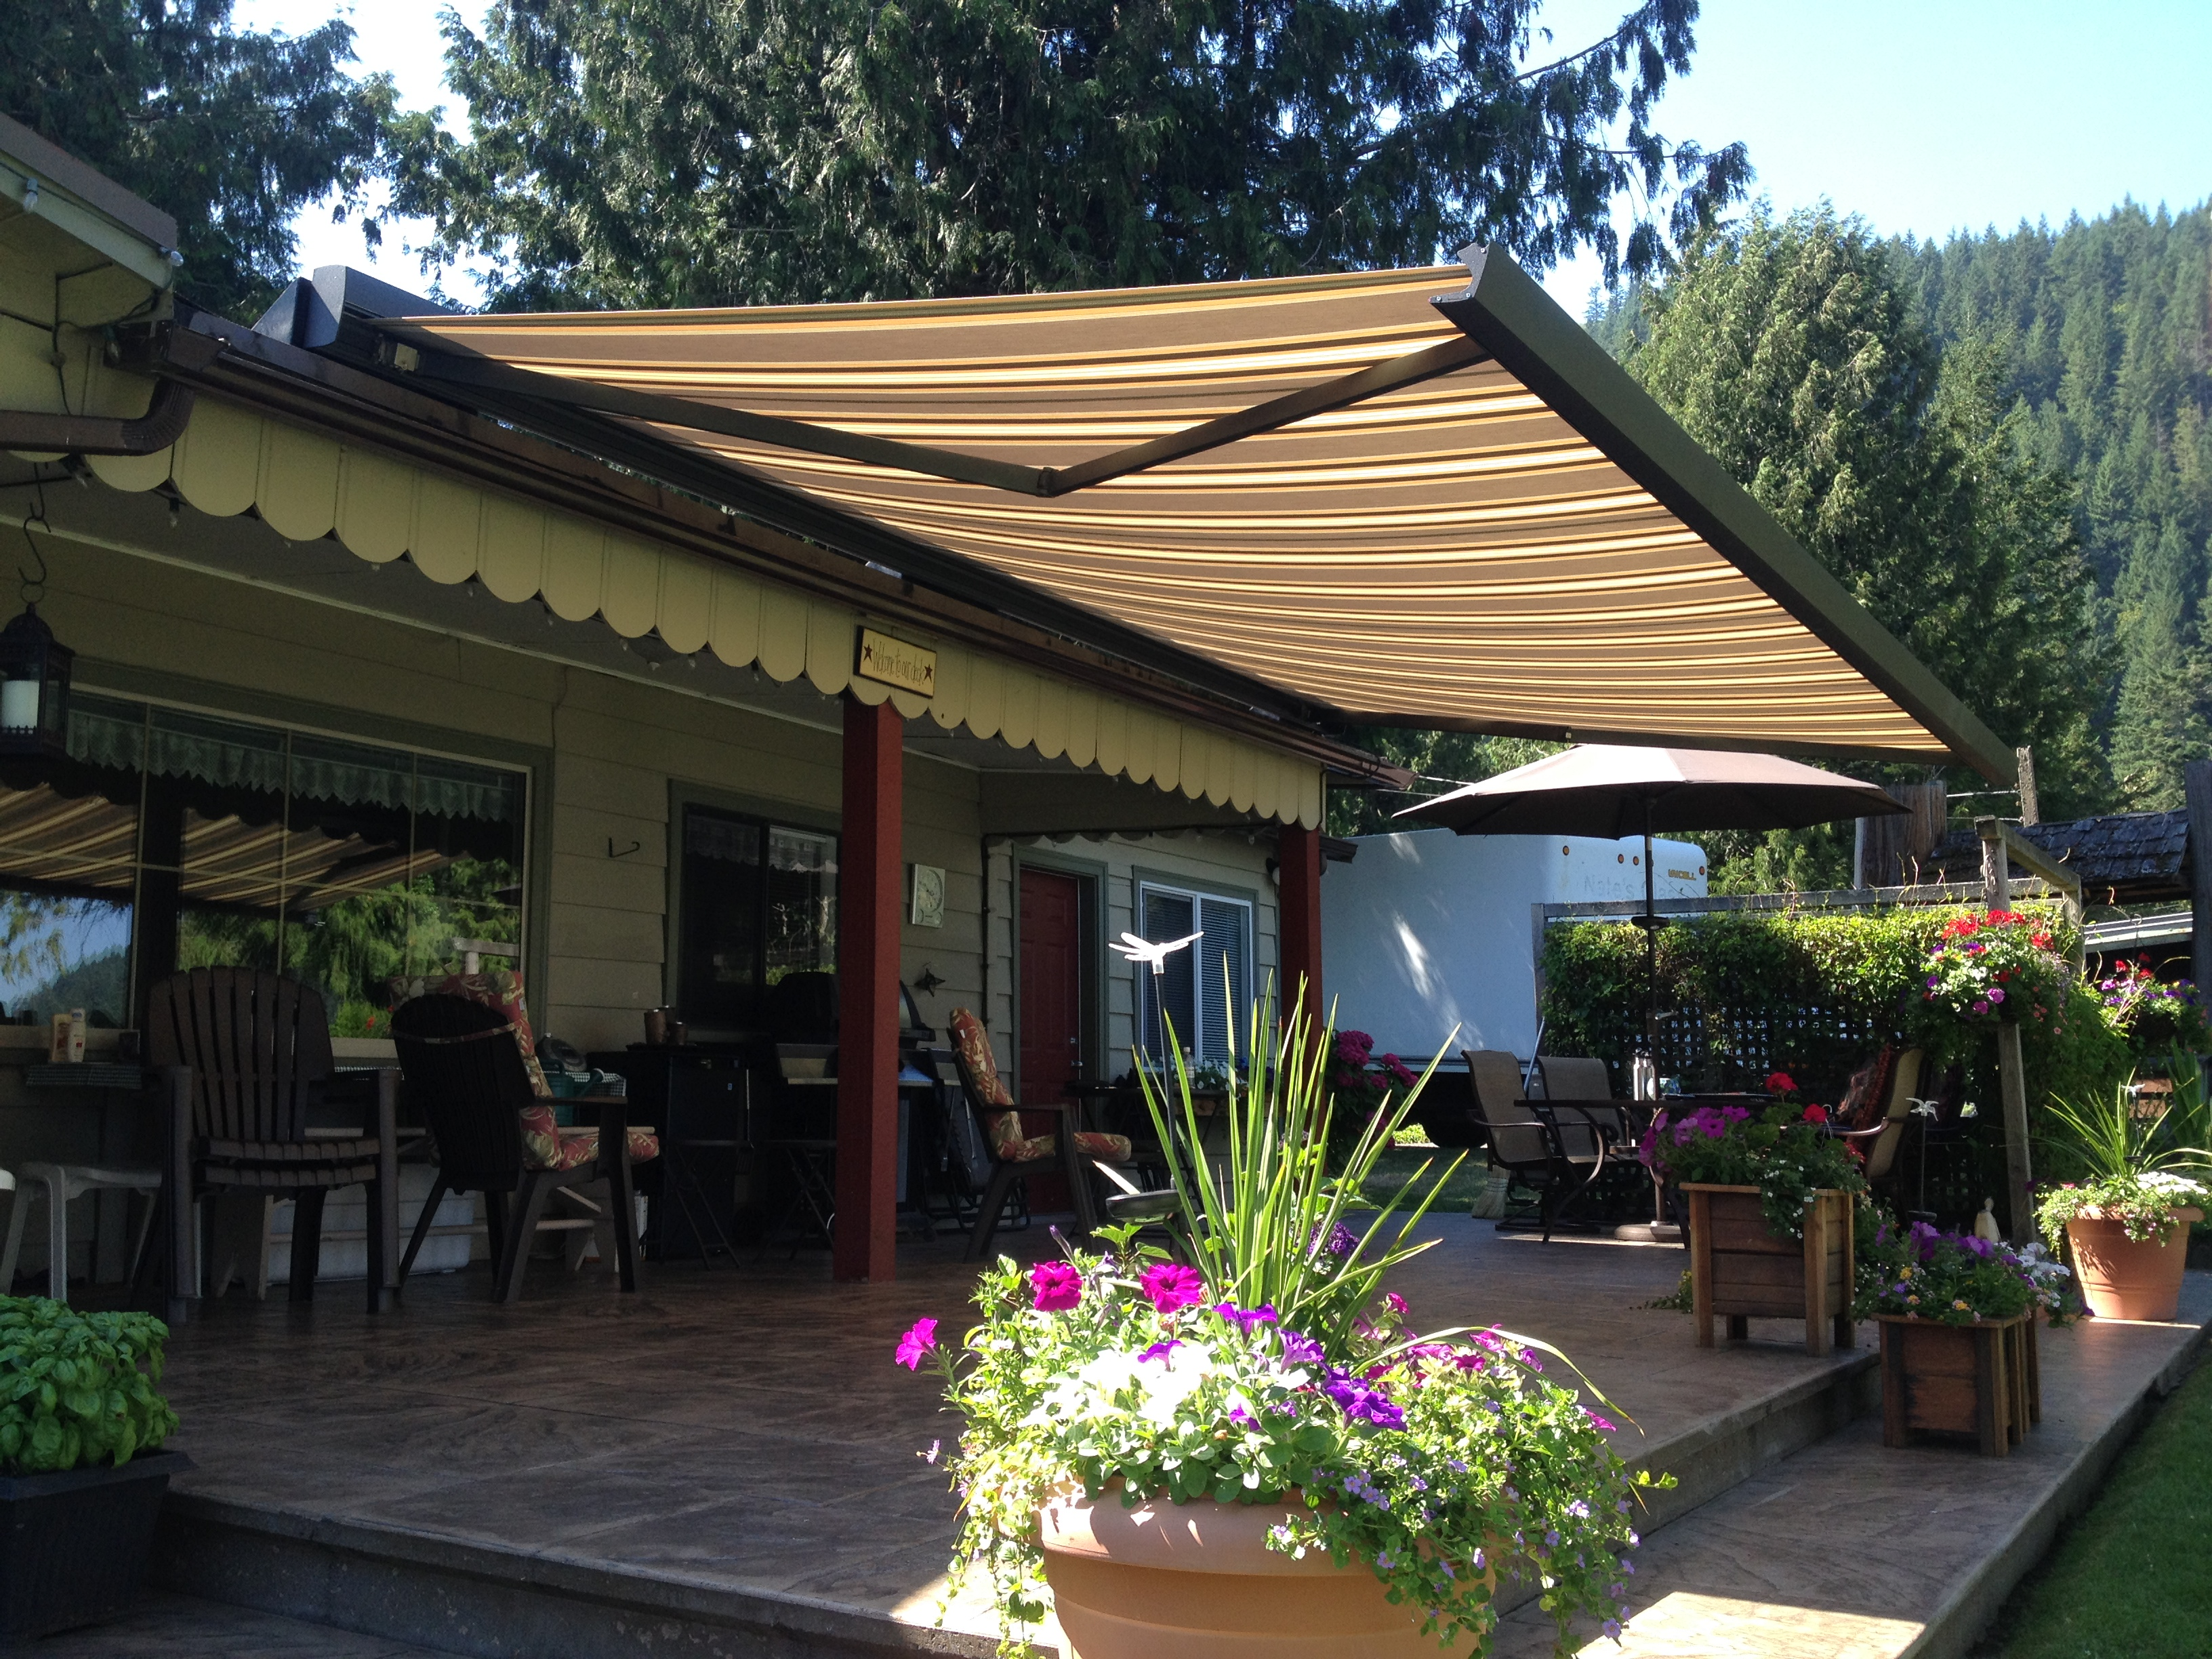 A Beautiful Roof Mount Awning By Cultus Lake 20x10 Full Cassette With Black Powdercoated Aluminum And Dickson Constant Algarve Fabric